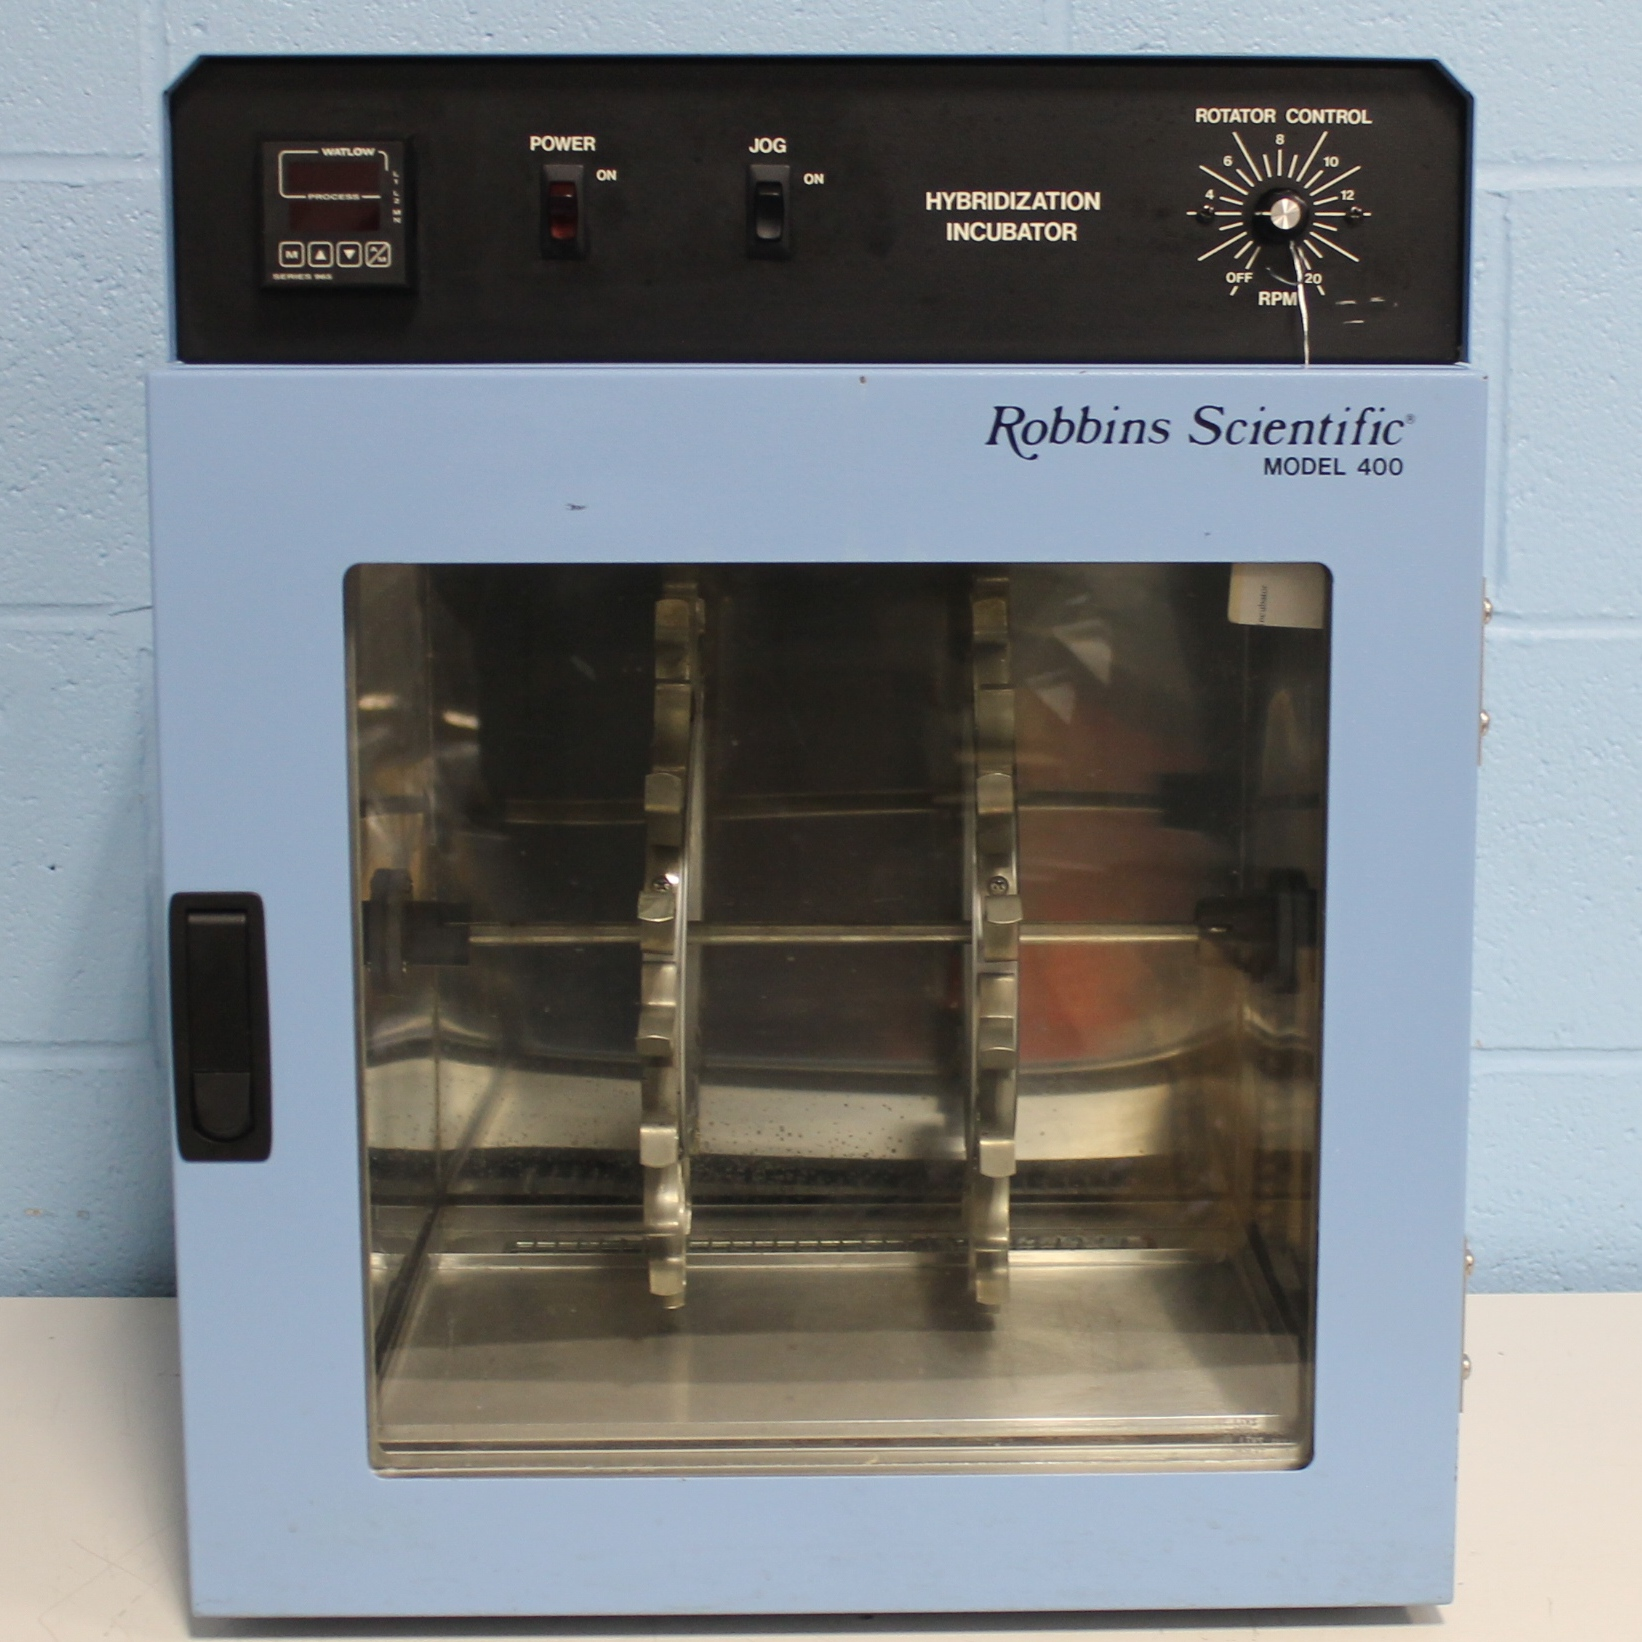 Robbins Scientific 400 Hybridization Incubator Image